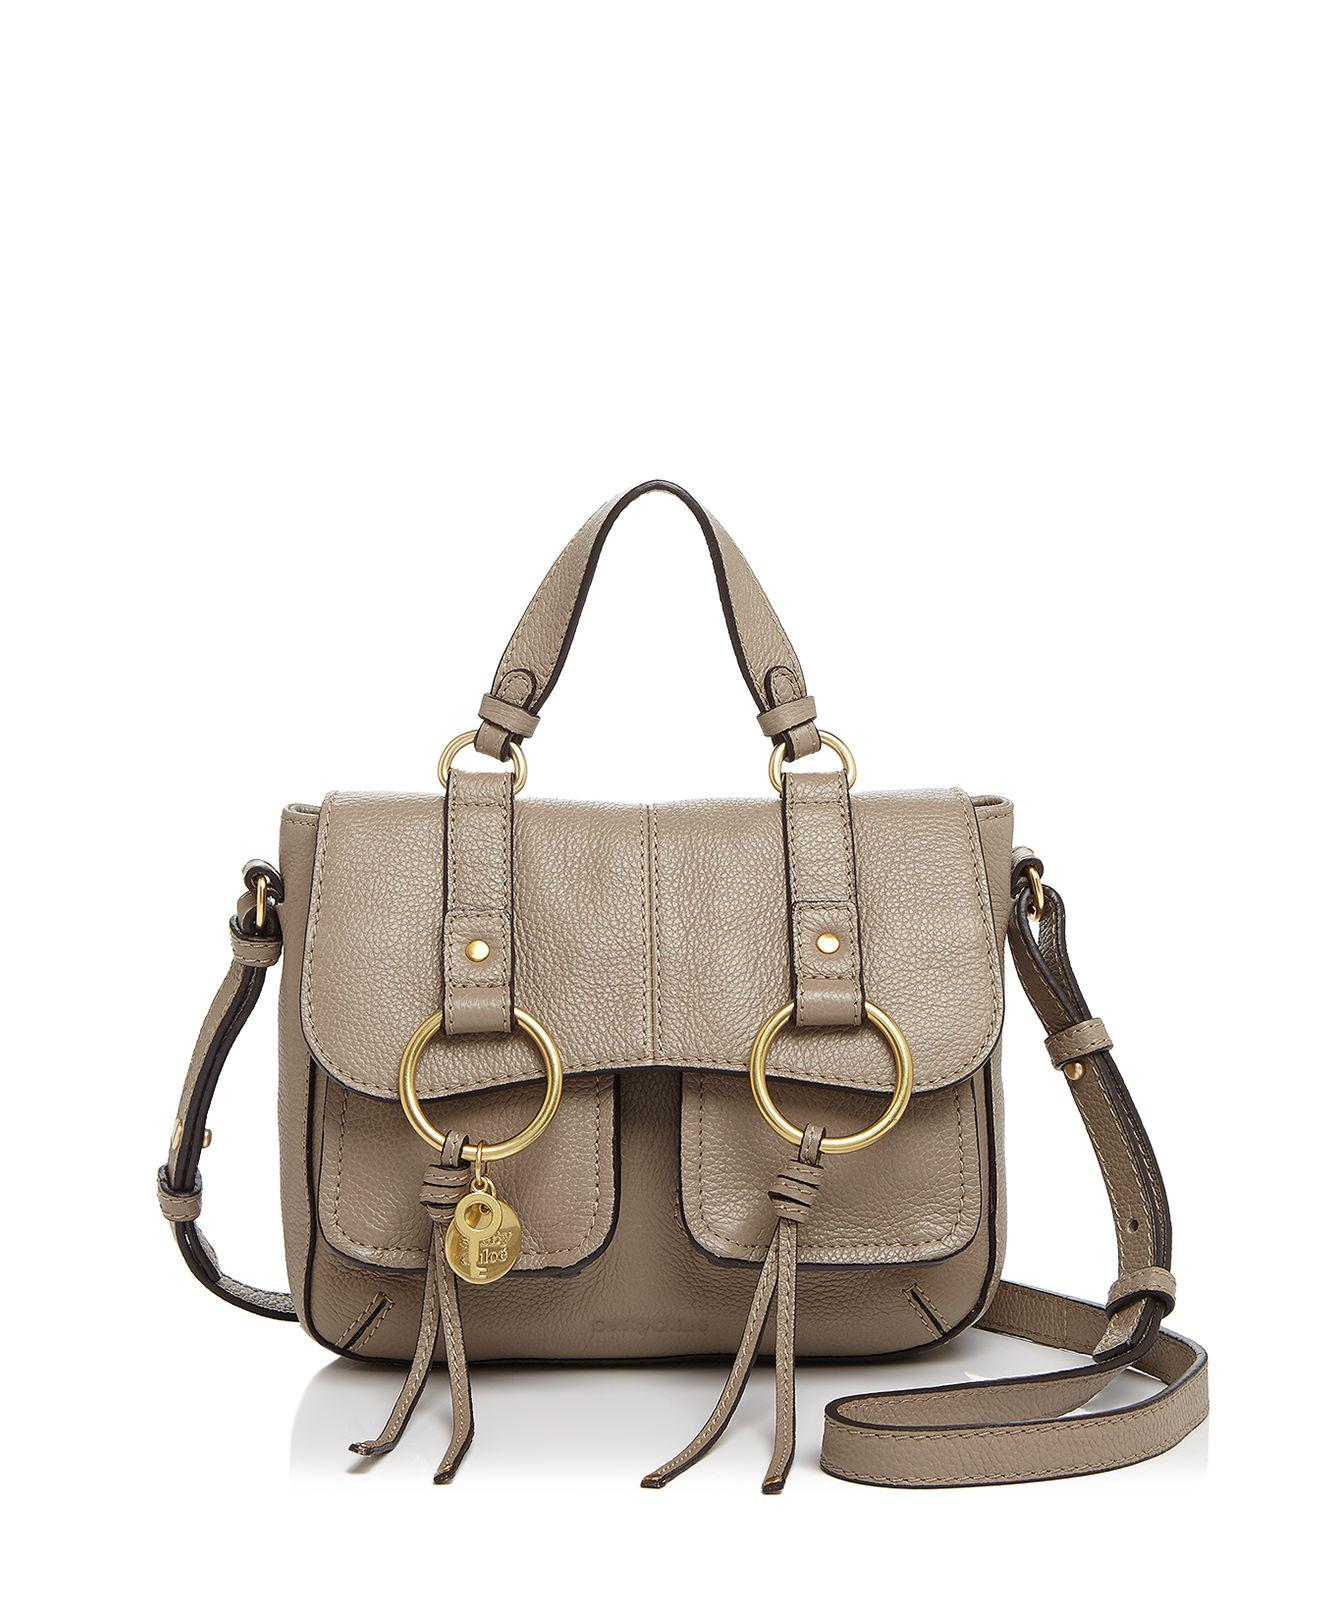 930ea1d627 Lyst - See By Chloé Filipa Leather Shoulder Bag